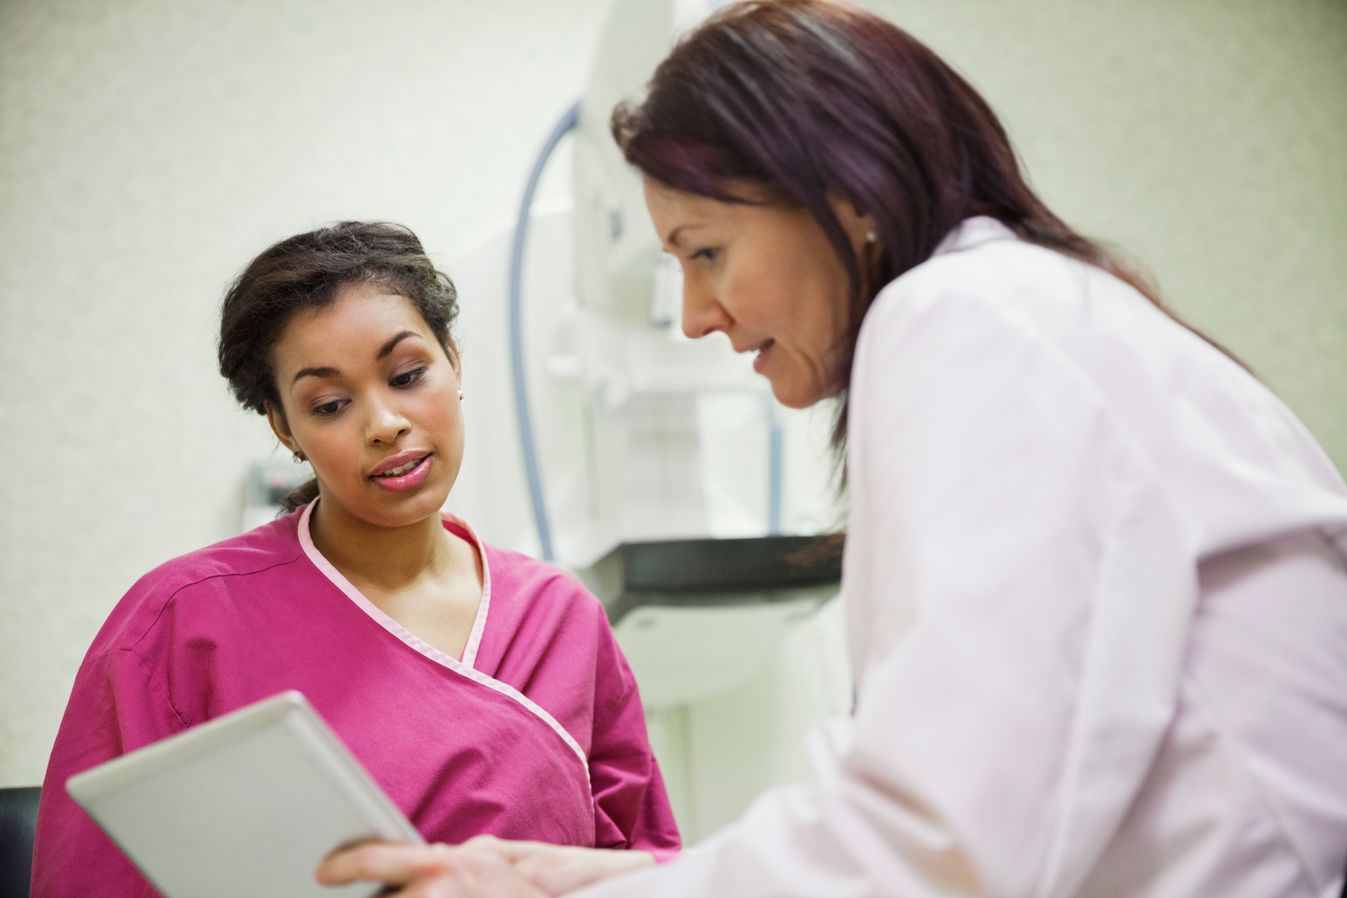 Patient in pink hospital gown talking to a doctor about her results